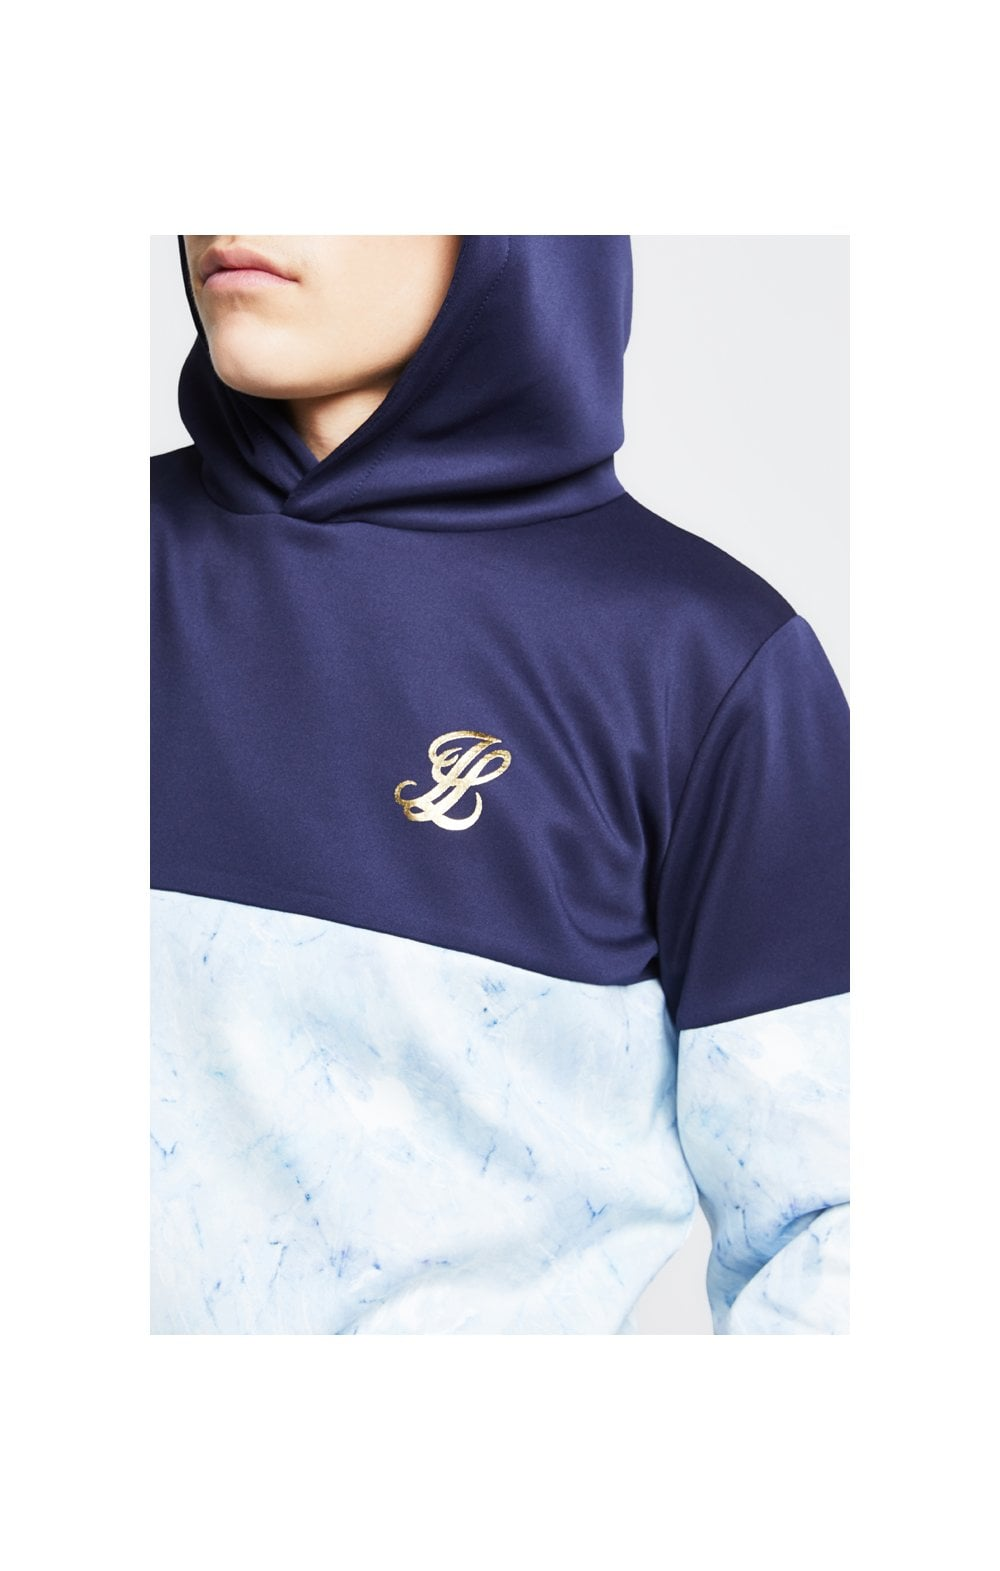 Load image into Gallery viewer, Illusive London Cut & Sew Marble Overhead Hoodie - Navy & Marble